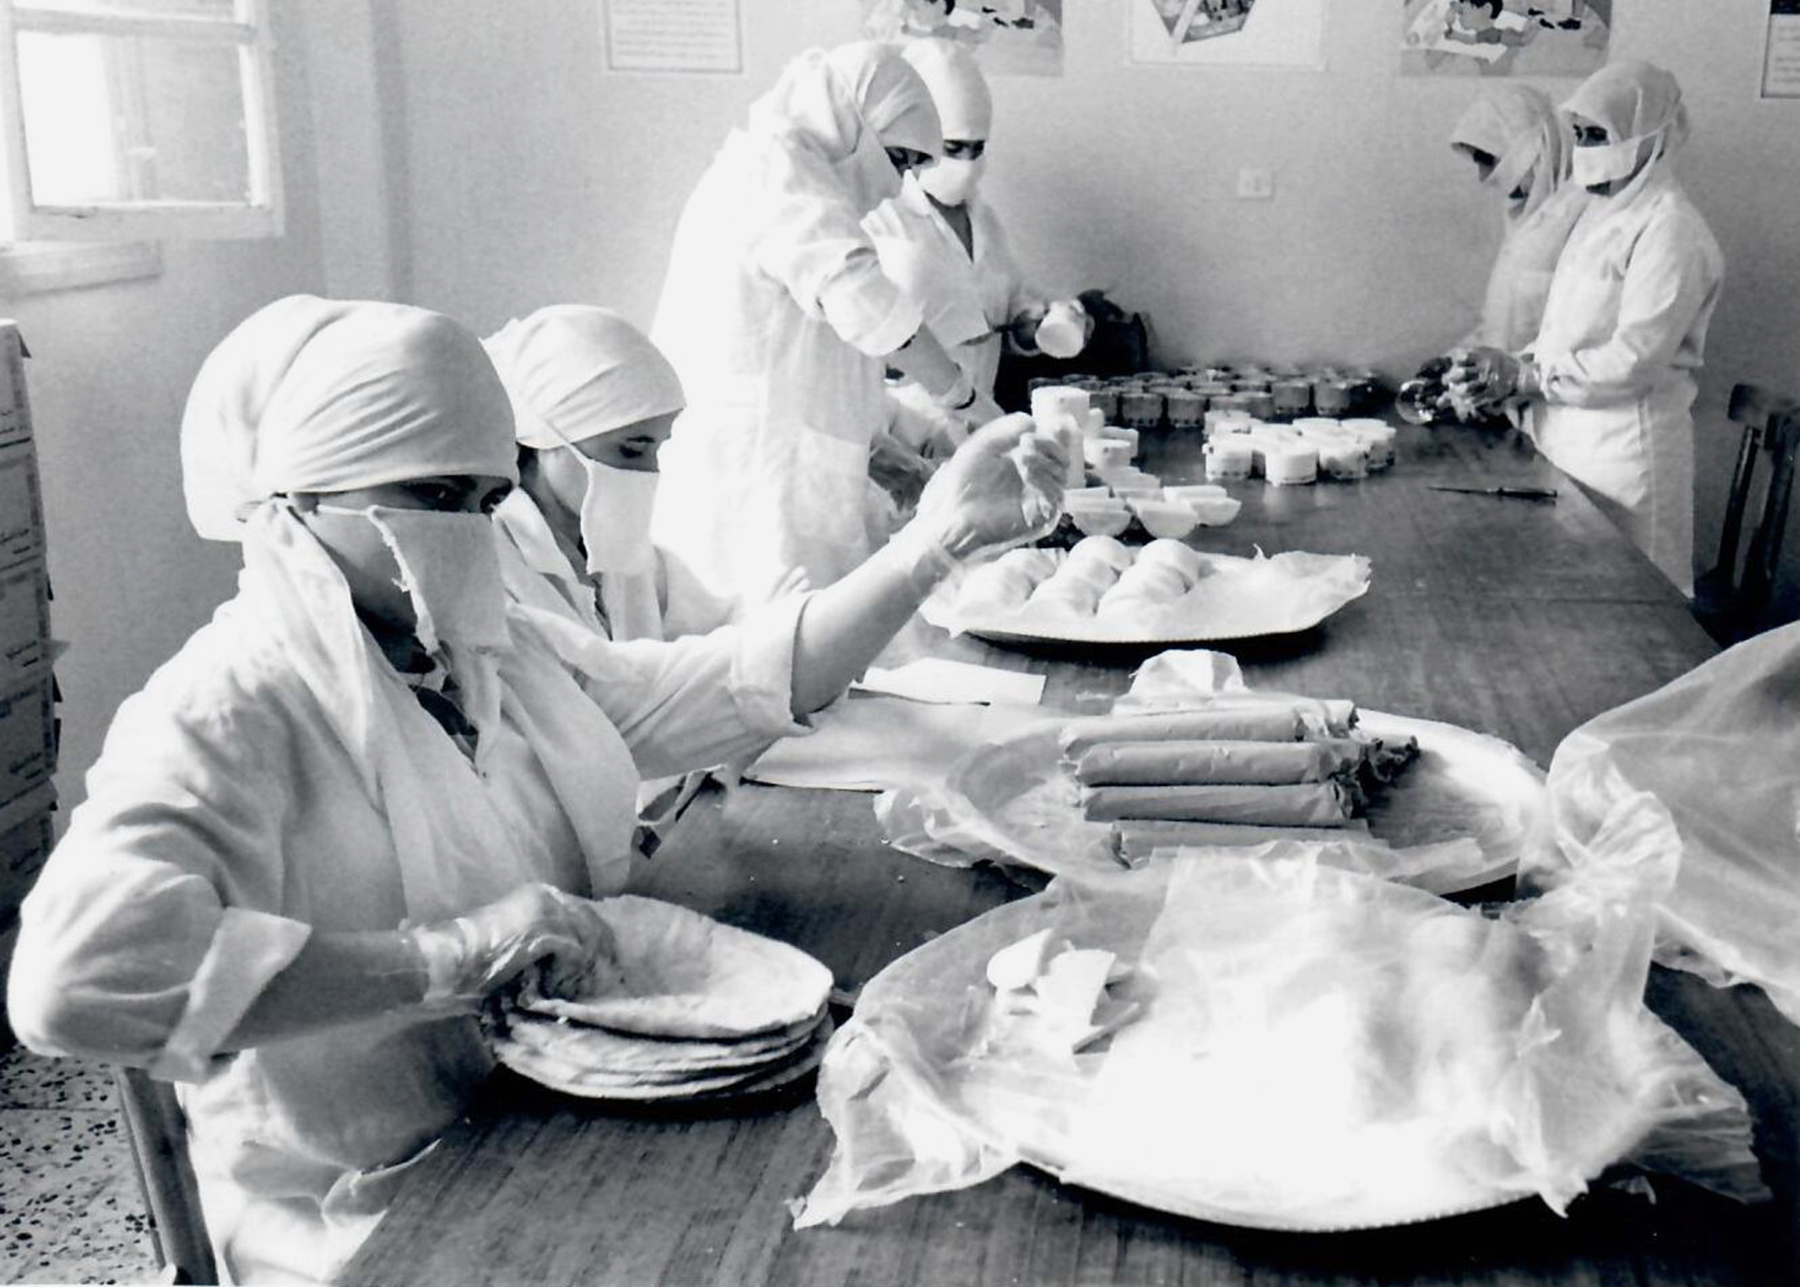 Afghanistan bakery for widows (2002)